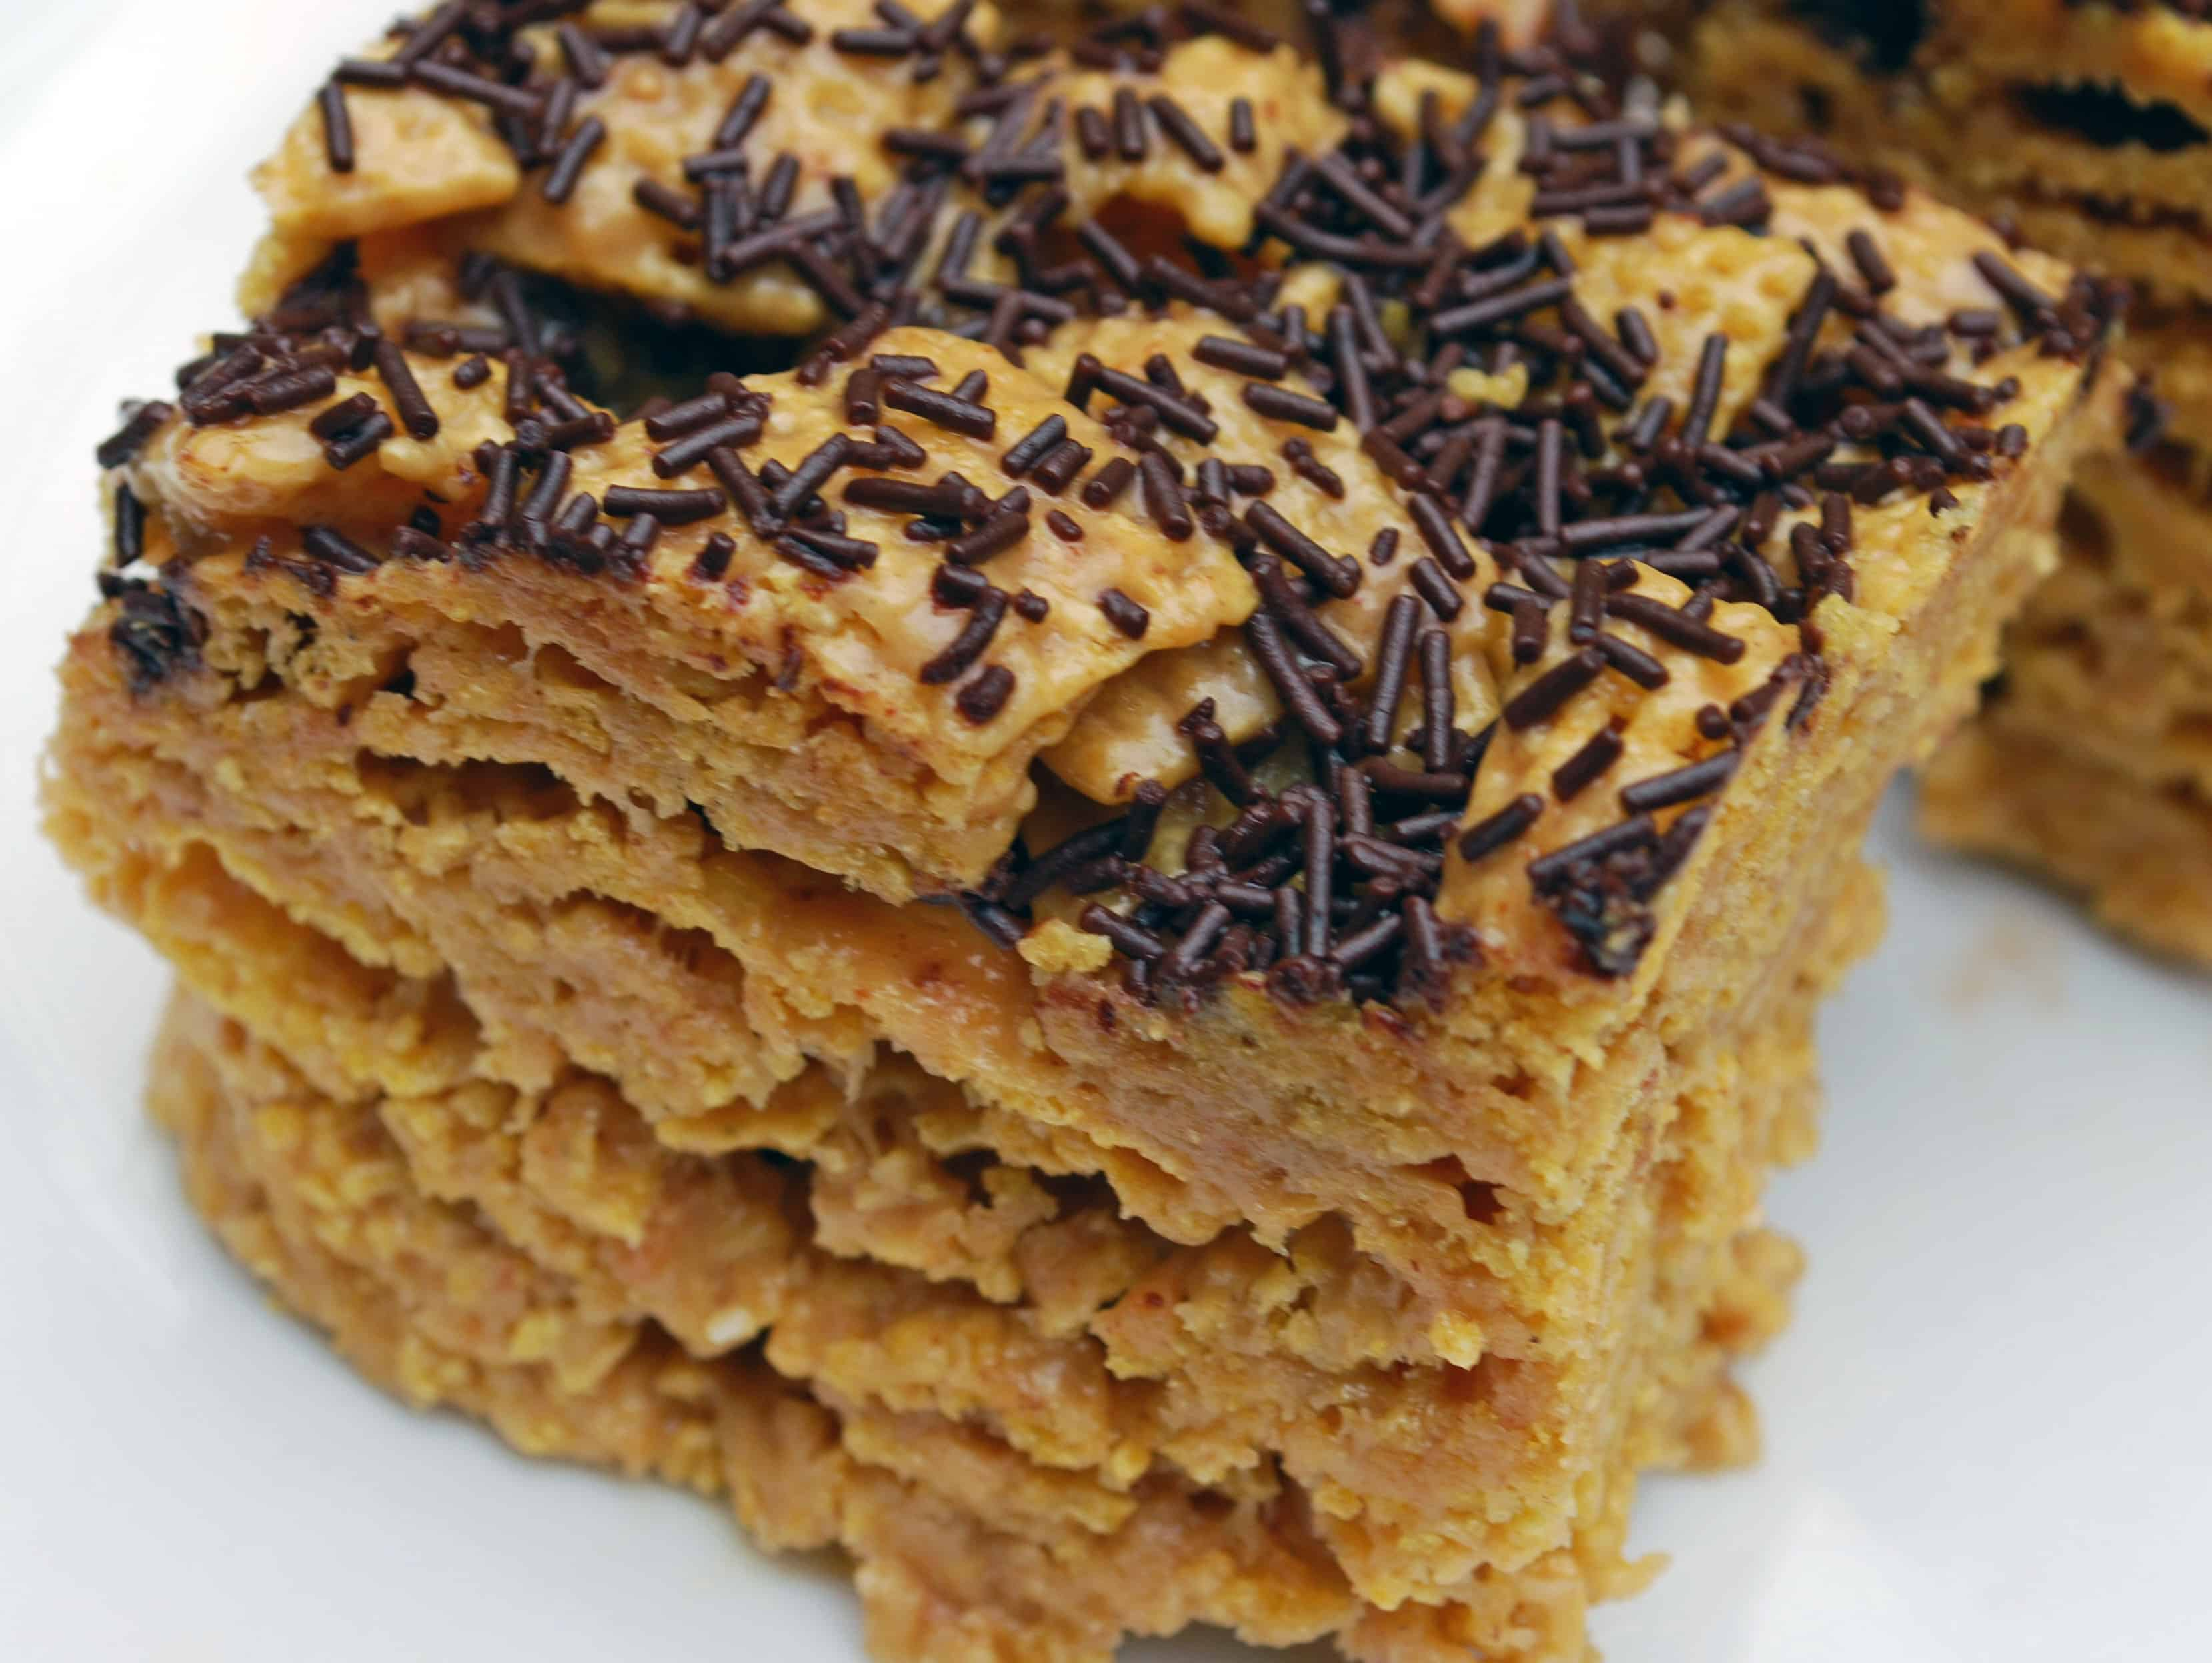 Crispy Brown Butter Peanut Butter Cereal Bars